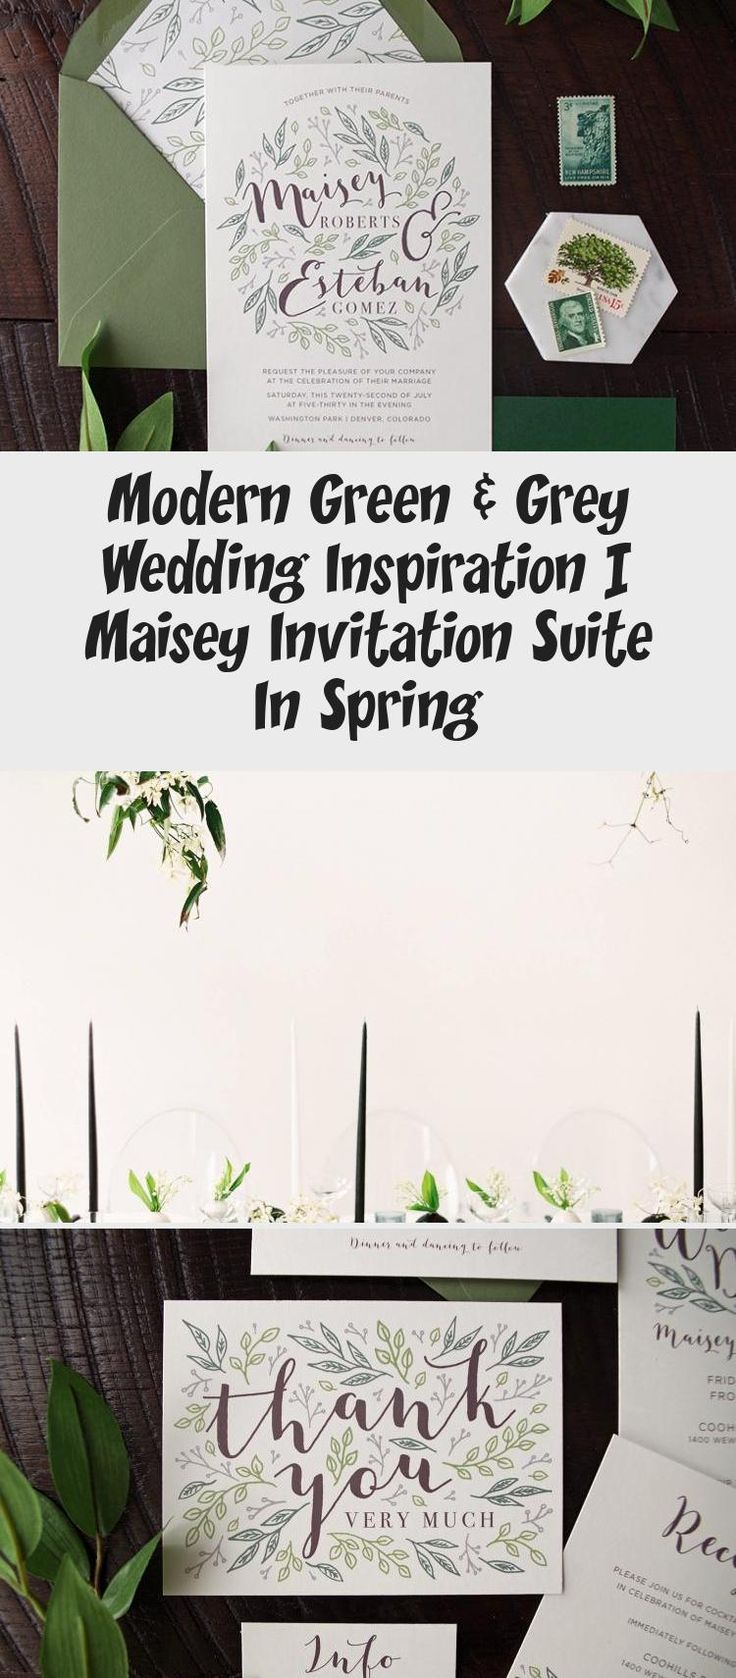 Botanical illustration Green & Grey Wedding inspiration perfect for a modern garden wedding or an urban wedding dripping with greenery. Palette of greens - emerald and sage. Earthy and organic with clean, modern touches. Bridesmaid dresses #BridesmaidDressesStyles #PinkBridesmaidDresses #BridesmaidDressesPlusSize #MermaidBridesmaidDresses #WeddingBridesmaidDresses